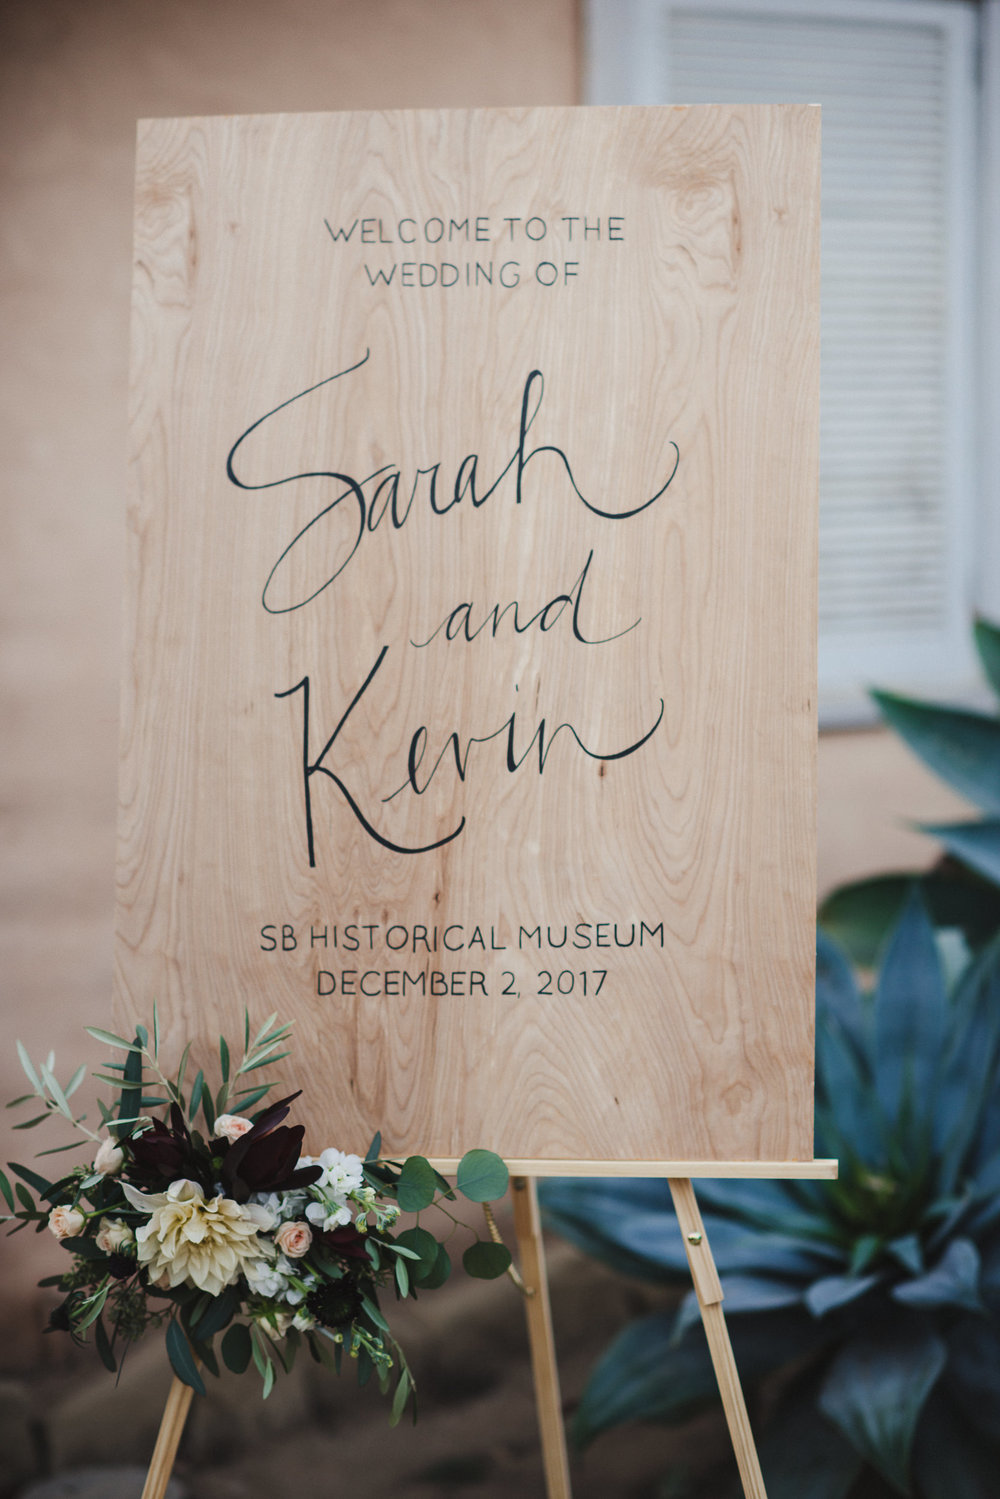 sSarah + Kev - Santa Barbara Historic Museum - 07 Ceremony-7.jpg